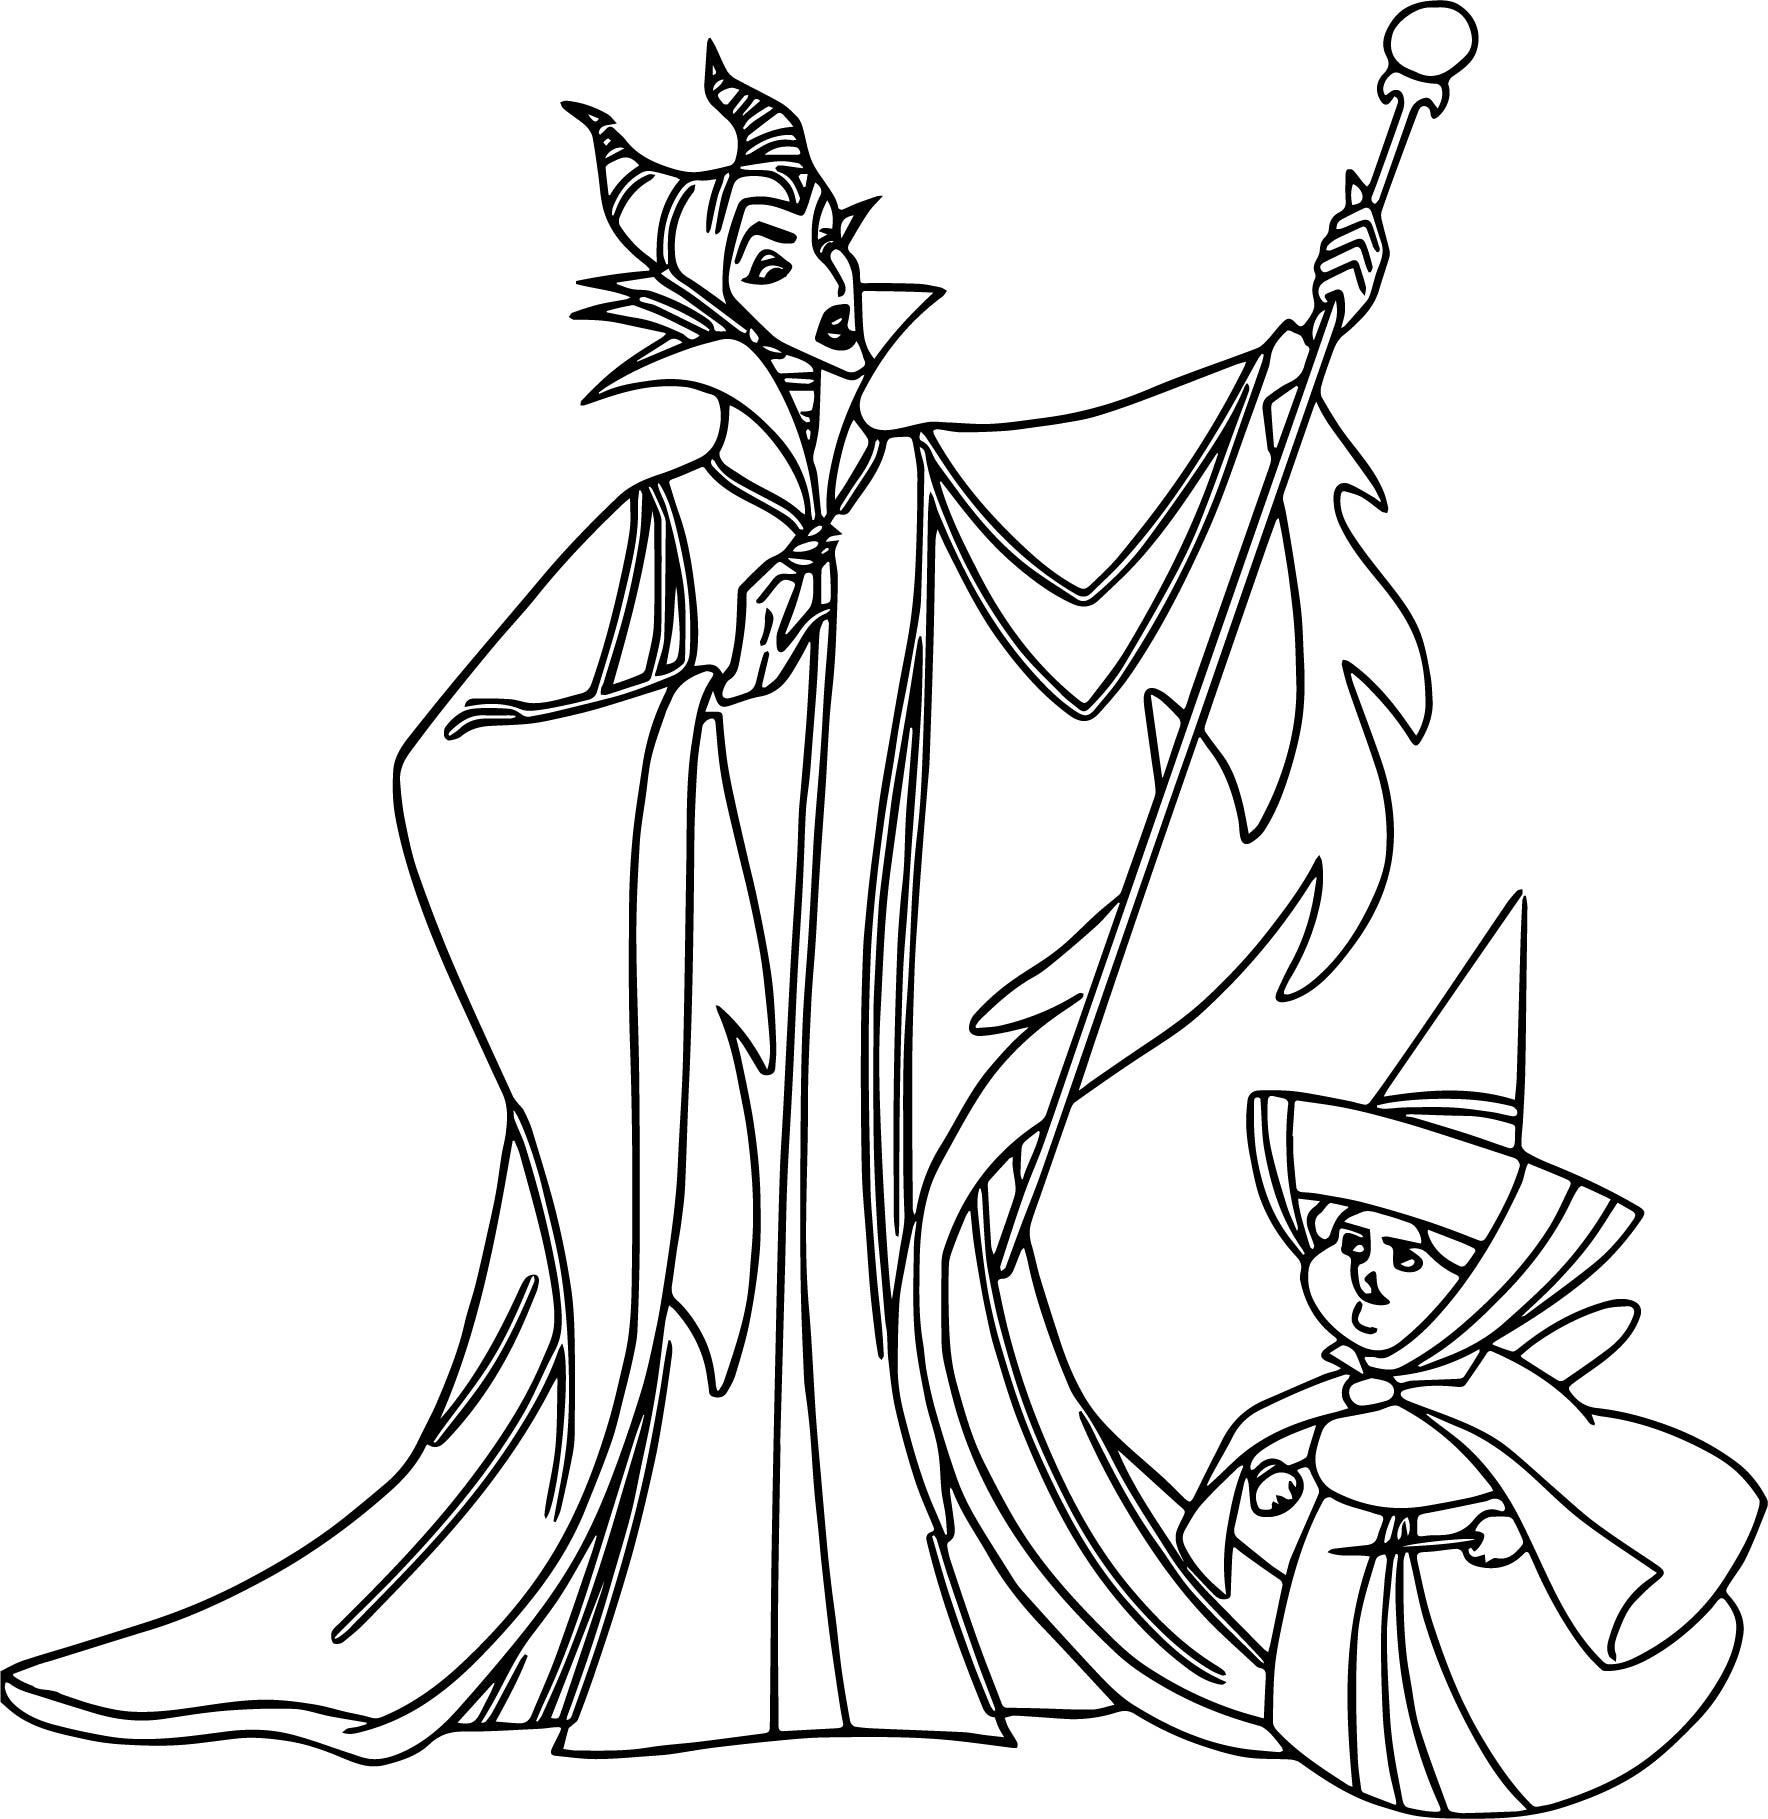 Maleficent merry weather coloring page for Maleficent coloring pages